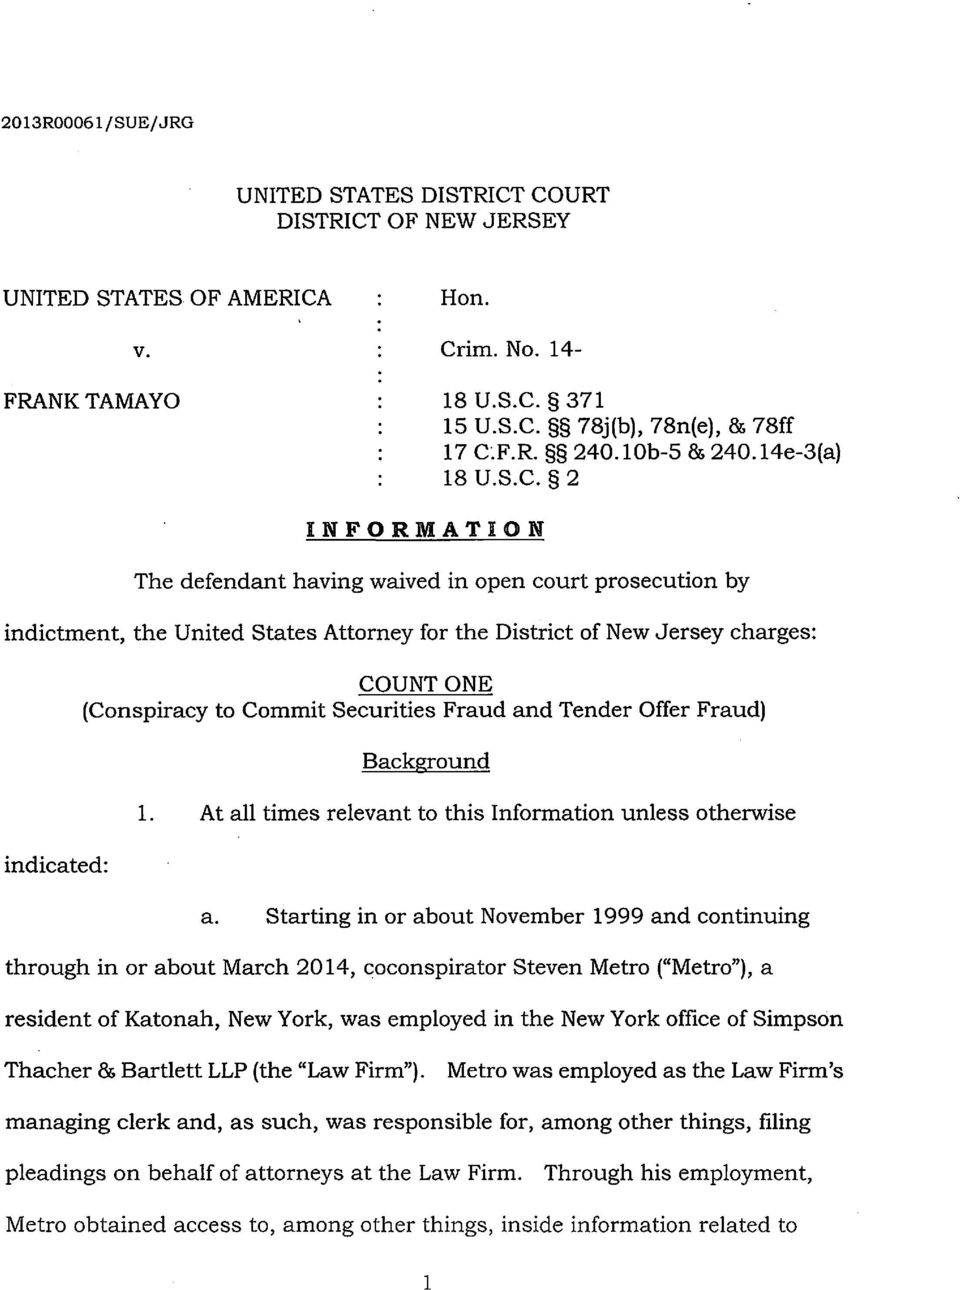 2 INFORMATION The defendant having waived in open court prosecution by indictment, the United States Attorney for the District of New Jersey charges: indicated: COUNT ONE (Conspiracy to Commit